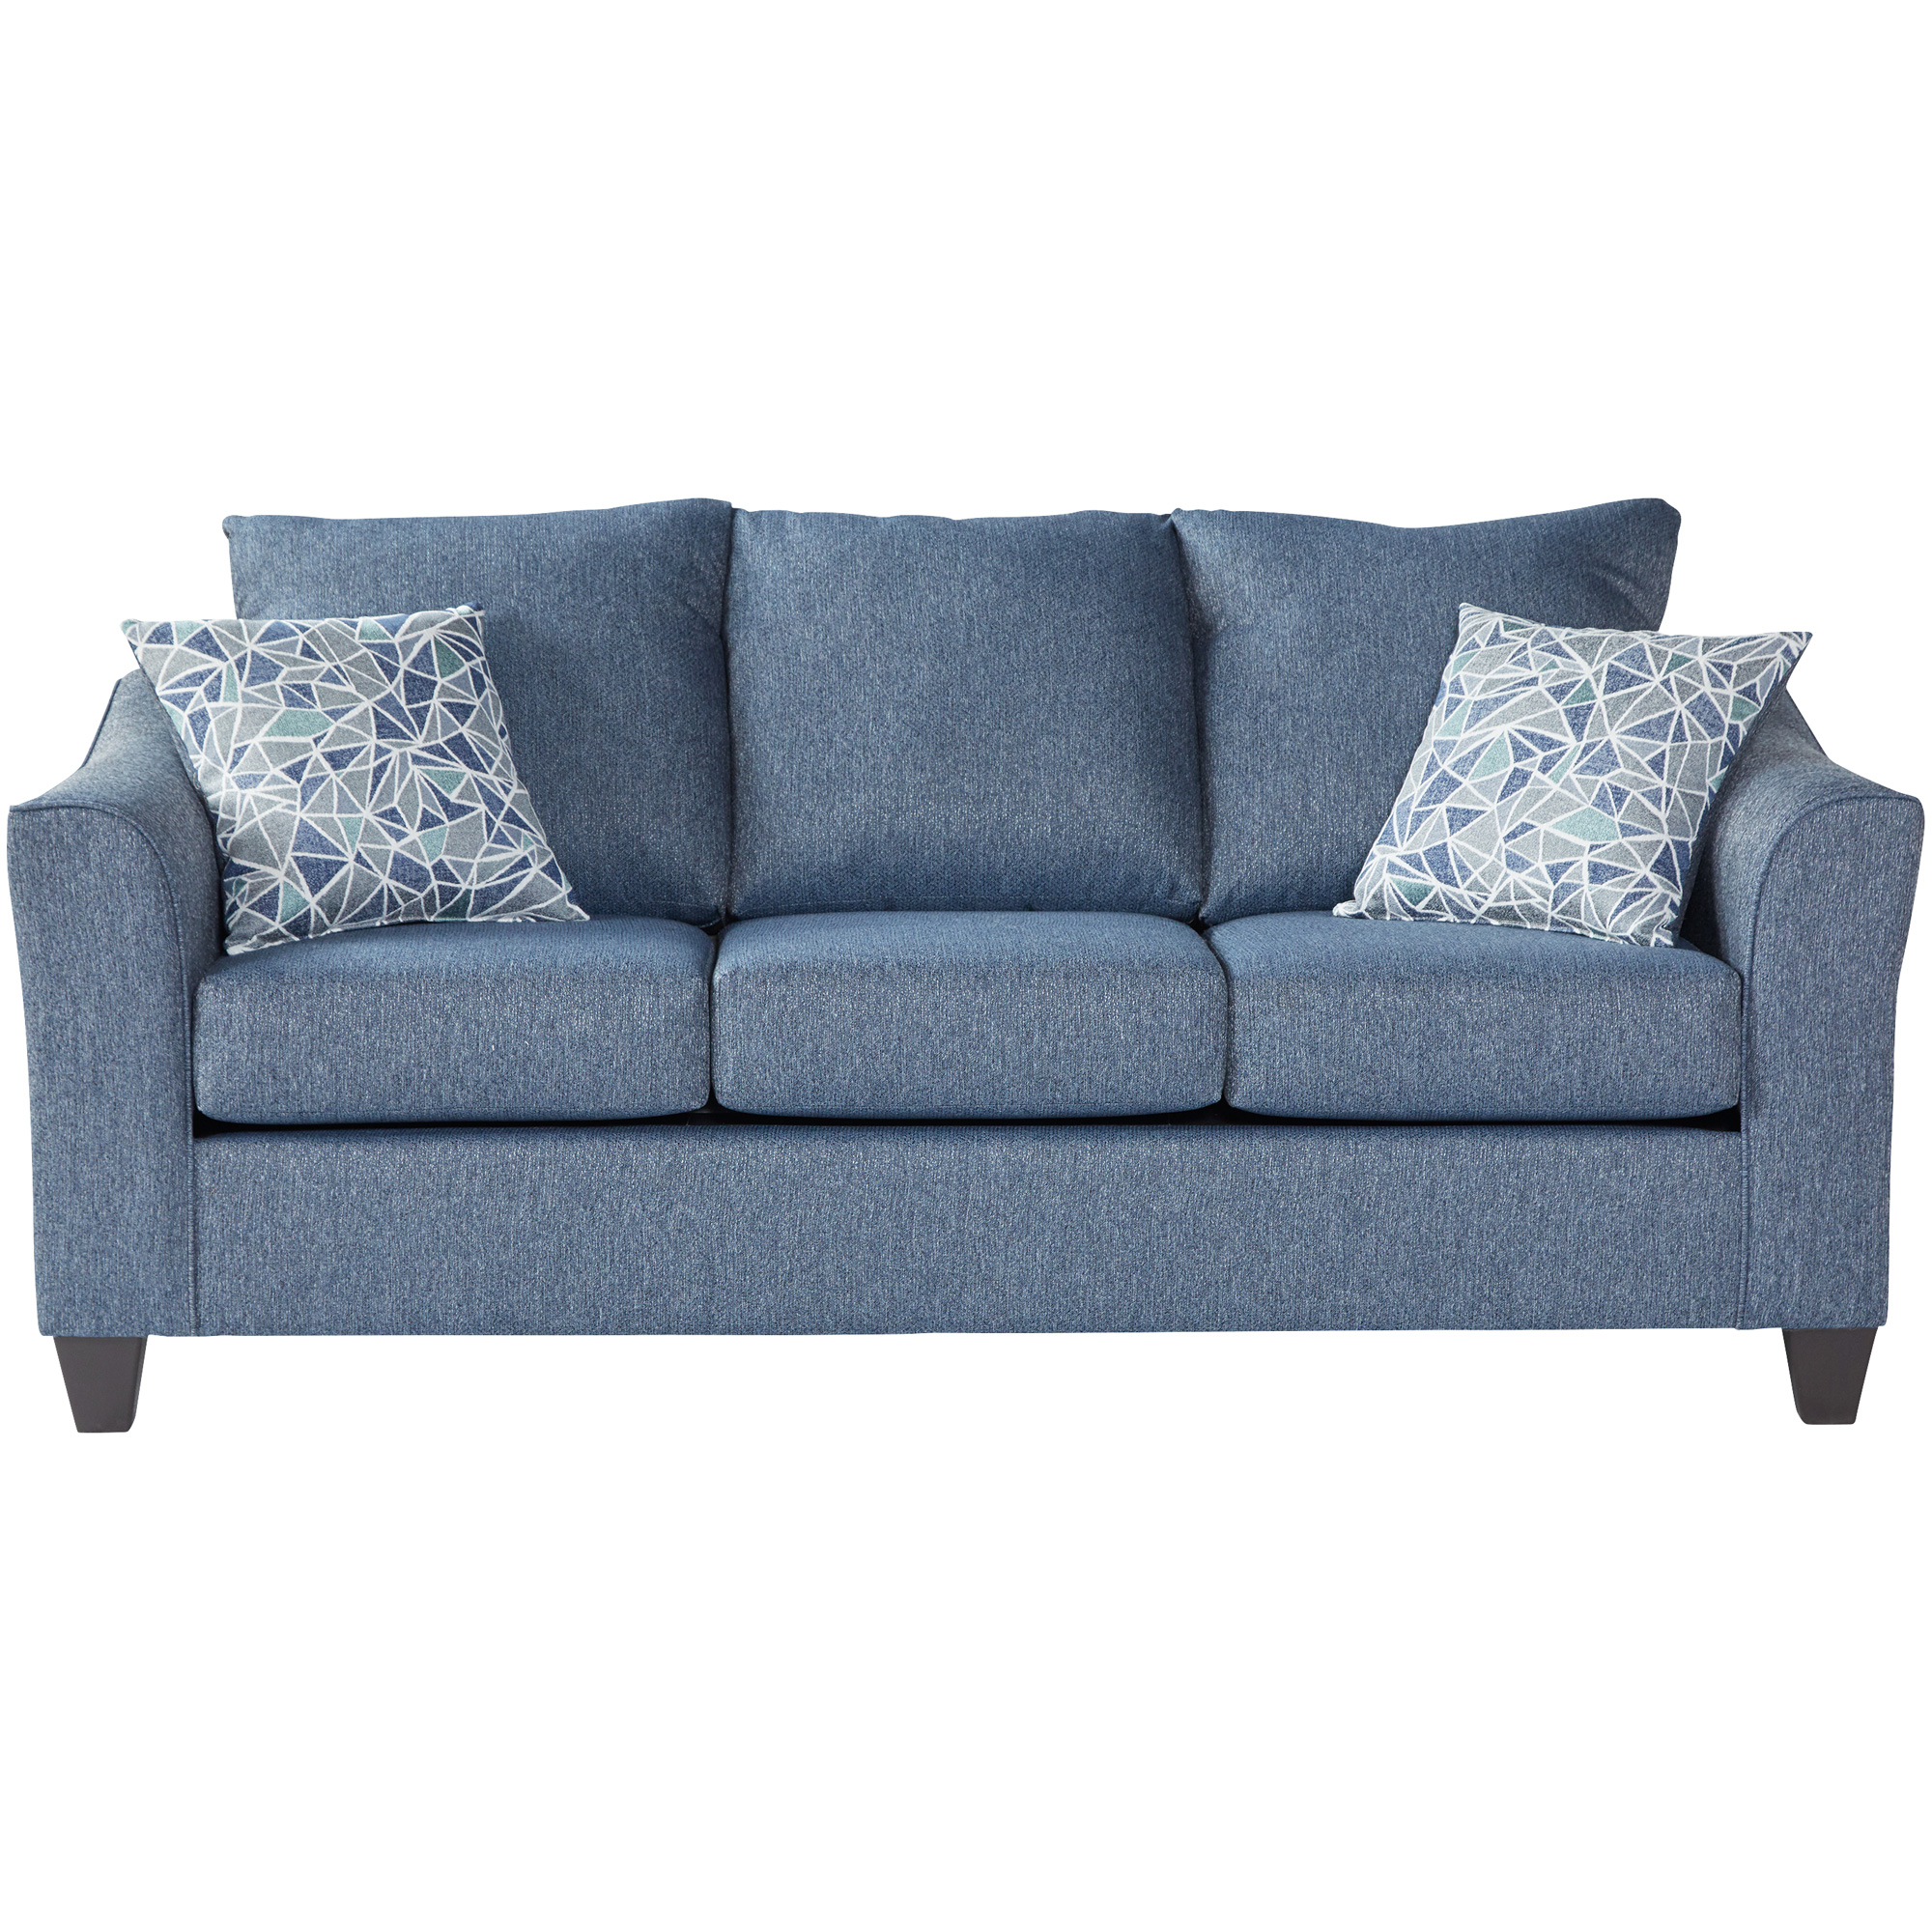 Serta Upholstery By Hughes Furniture | Bolt Cobalt Sofa